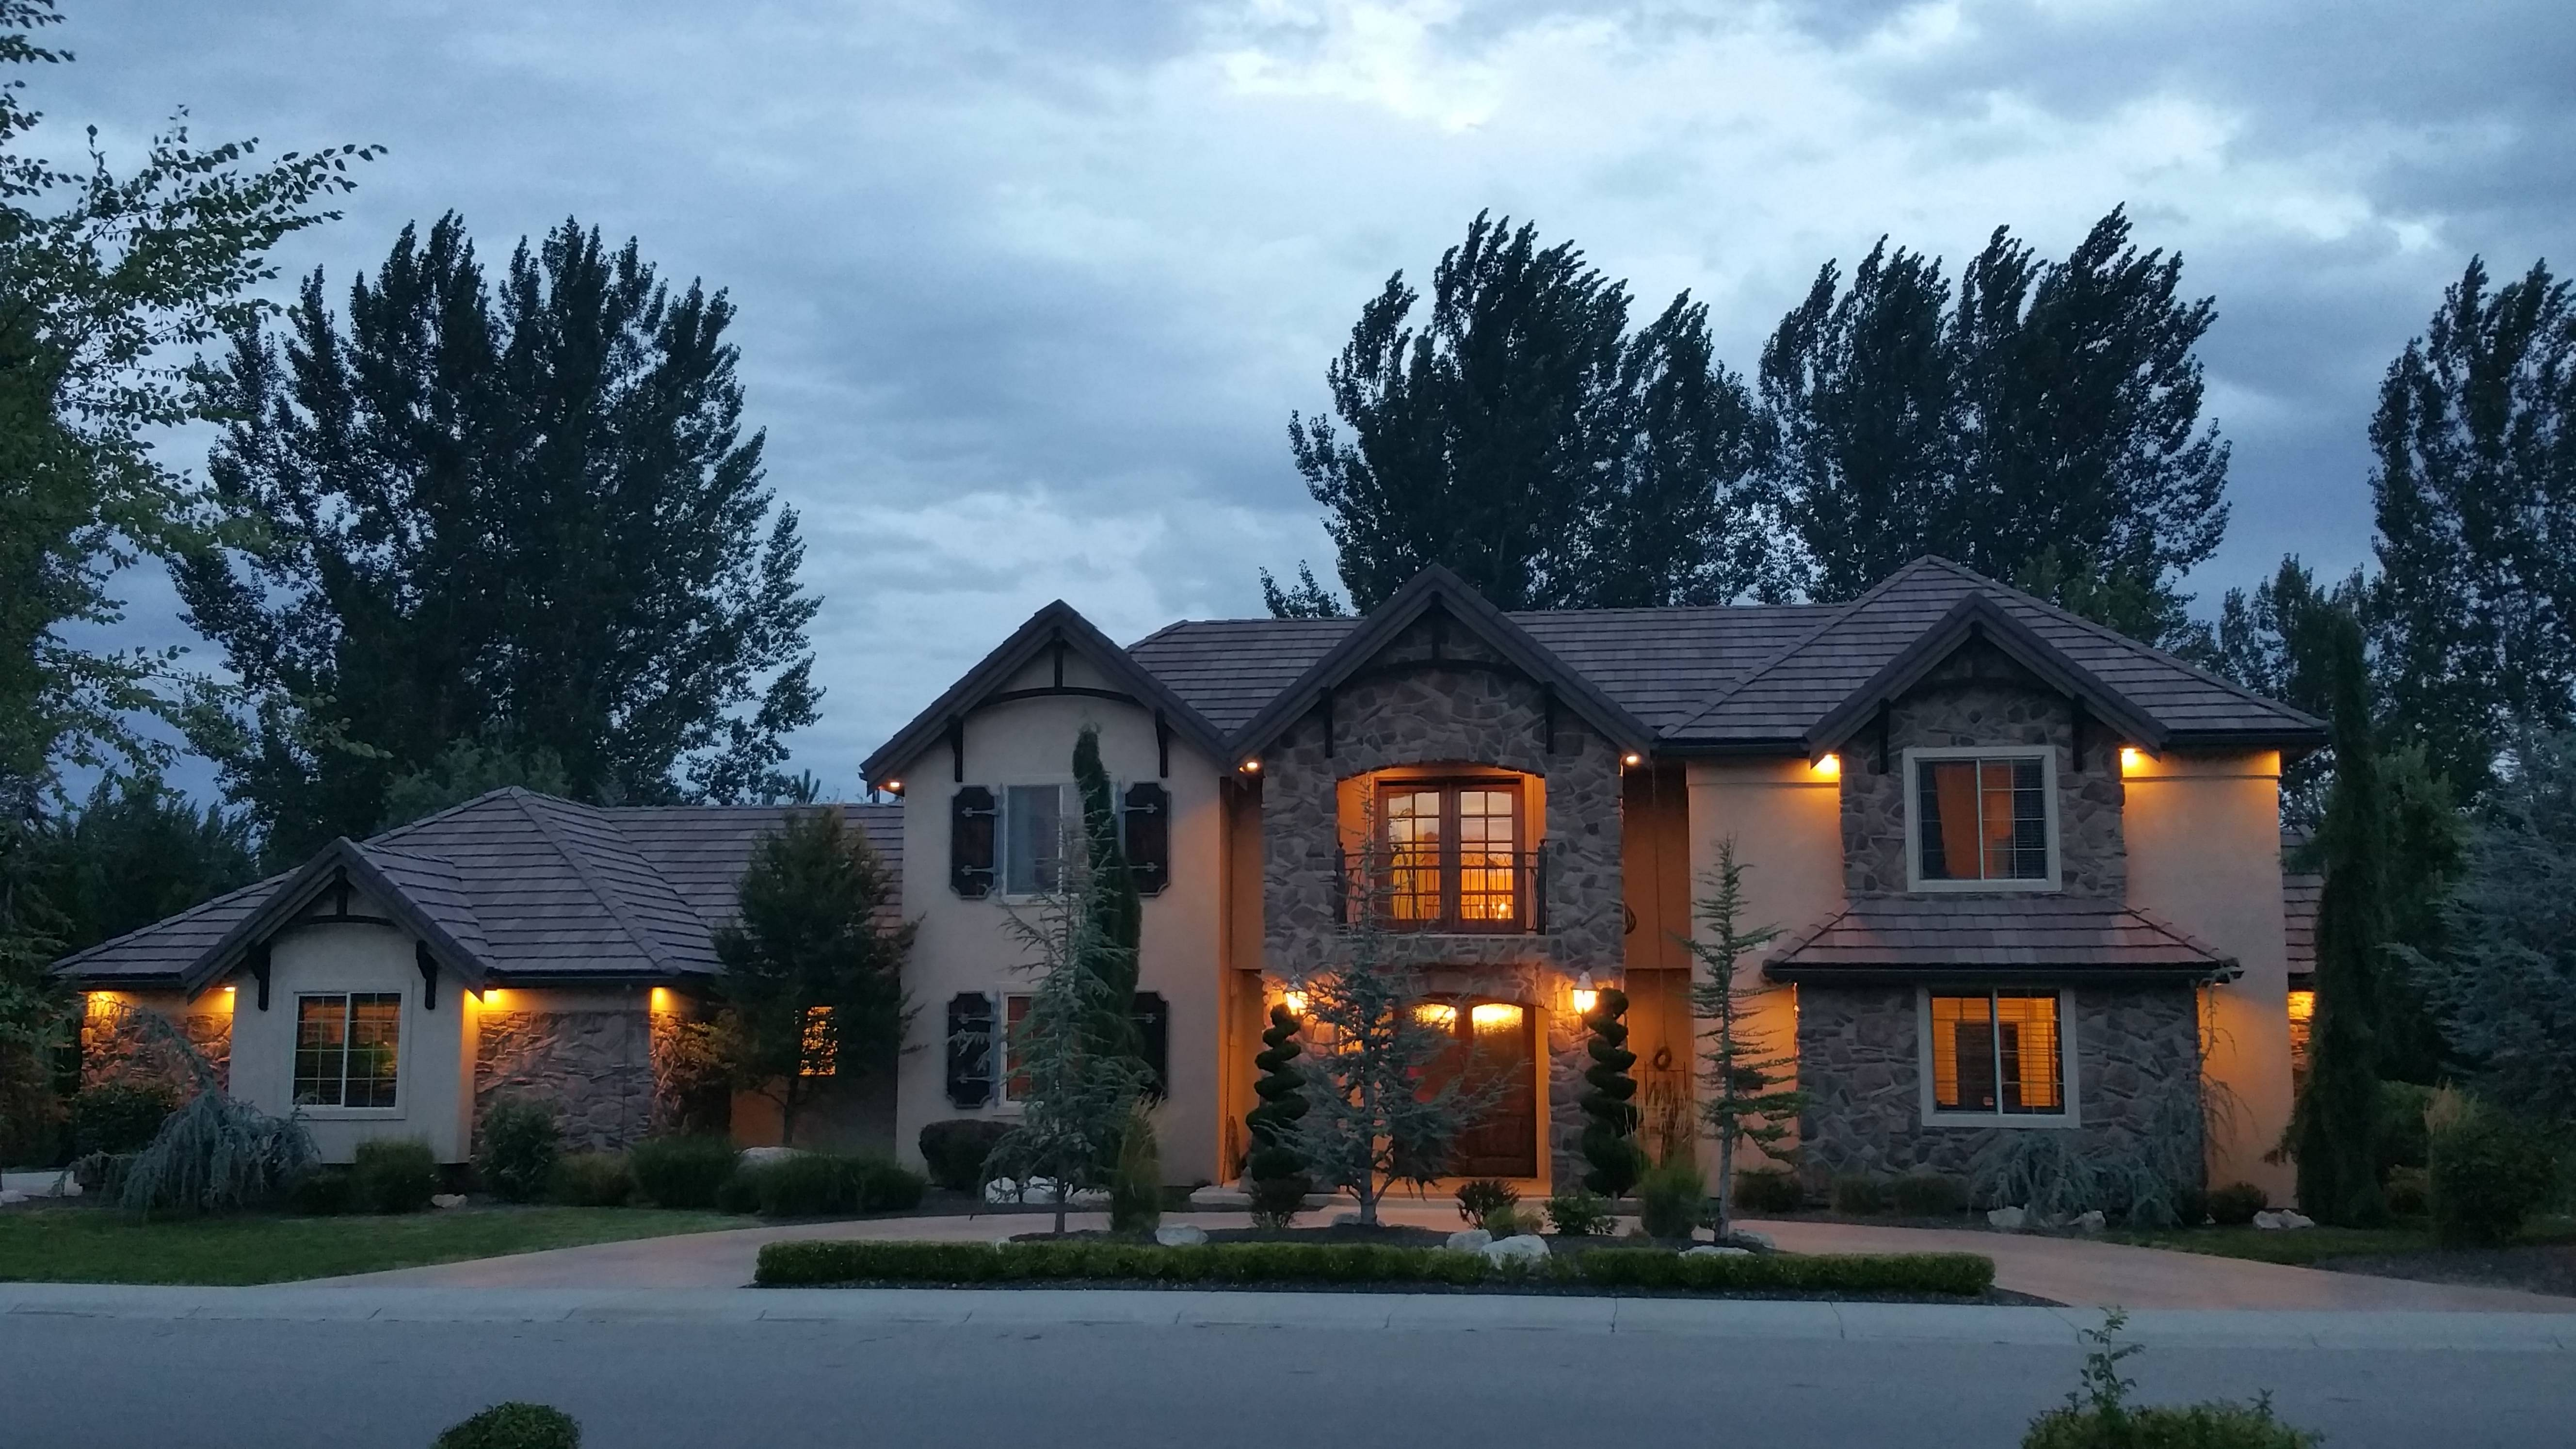 594 W Watersford, Eagle Idaho